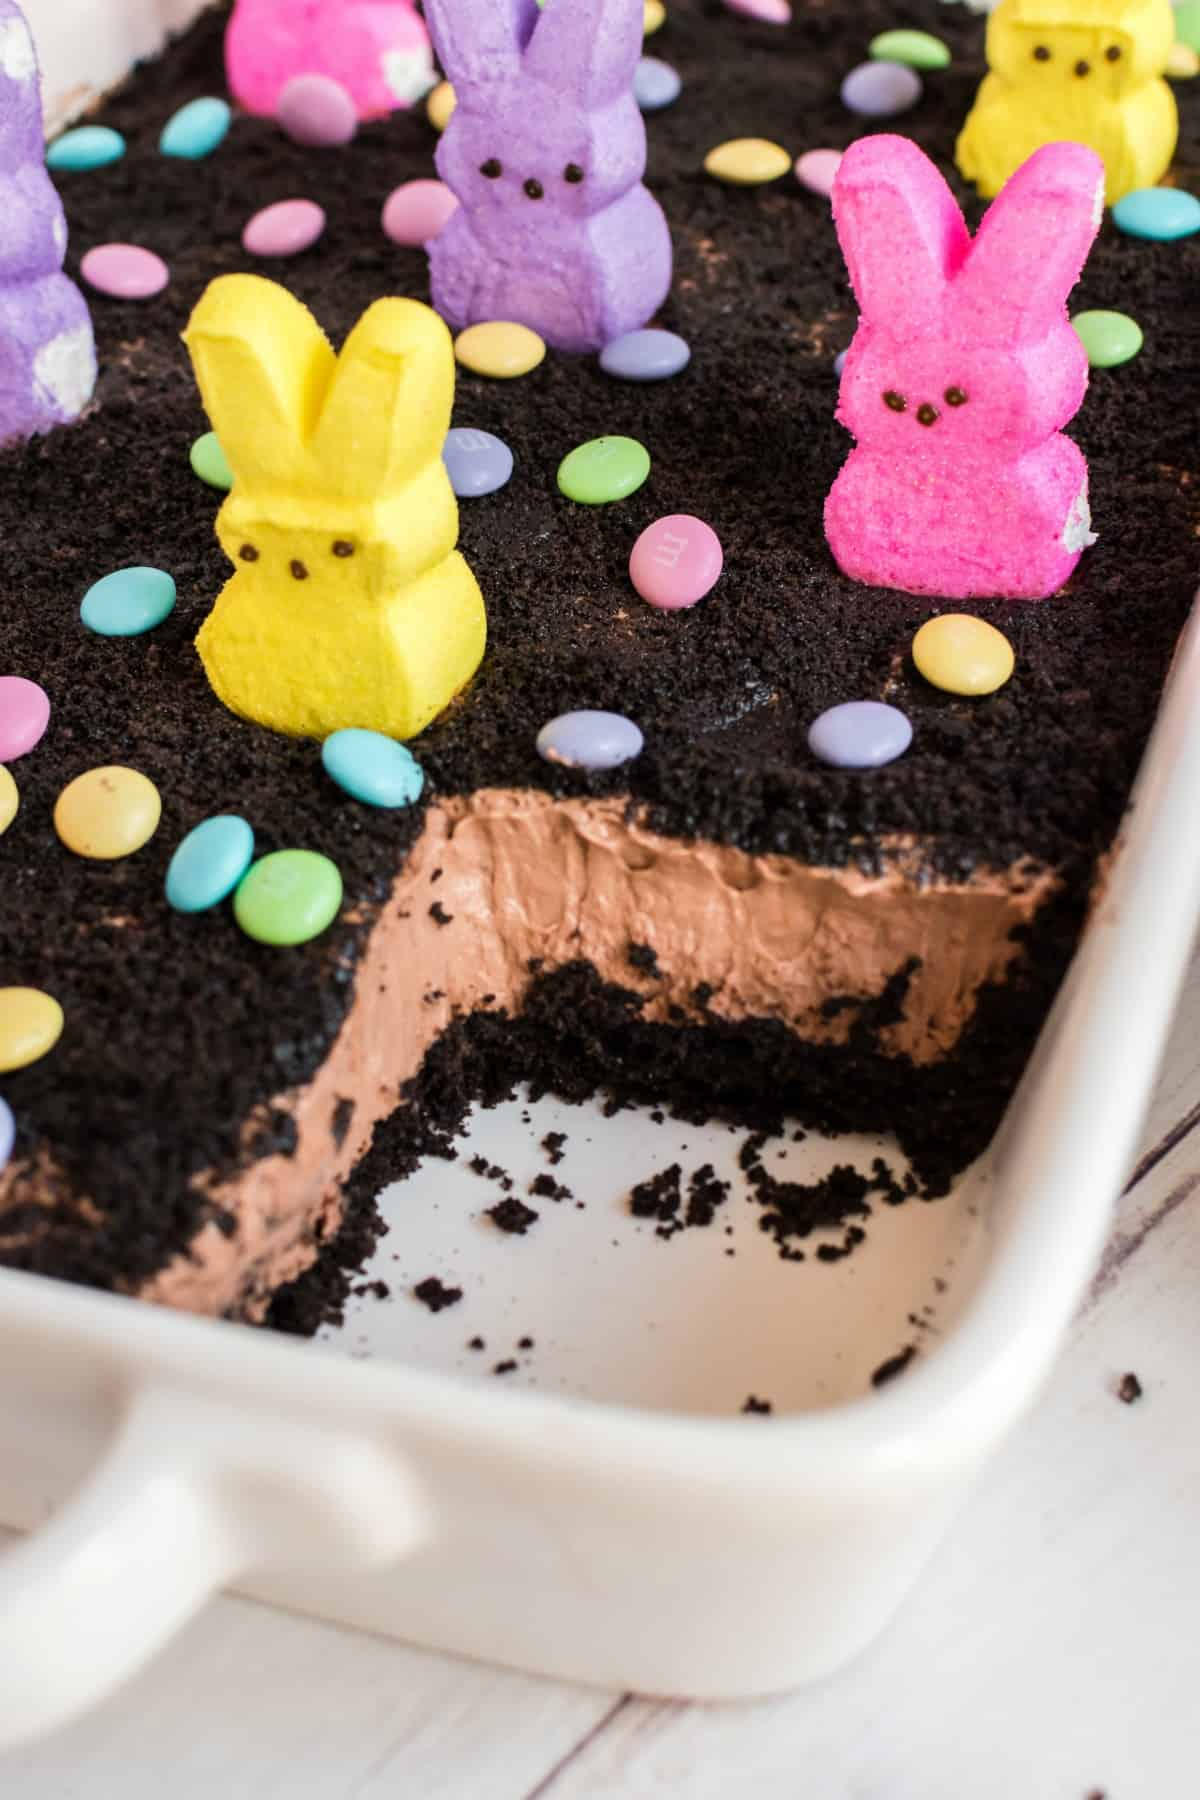 Easter dirt cake in a 13x9 baking dish with one slice removed.